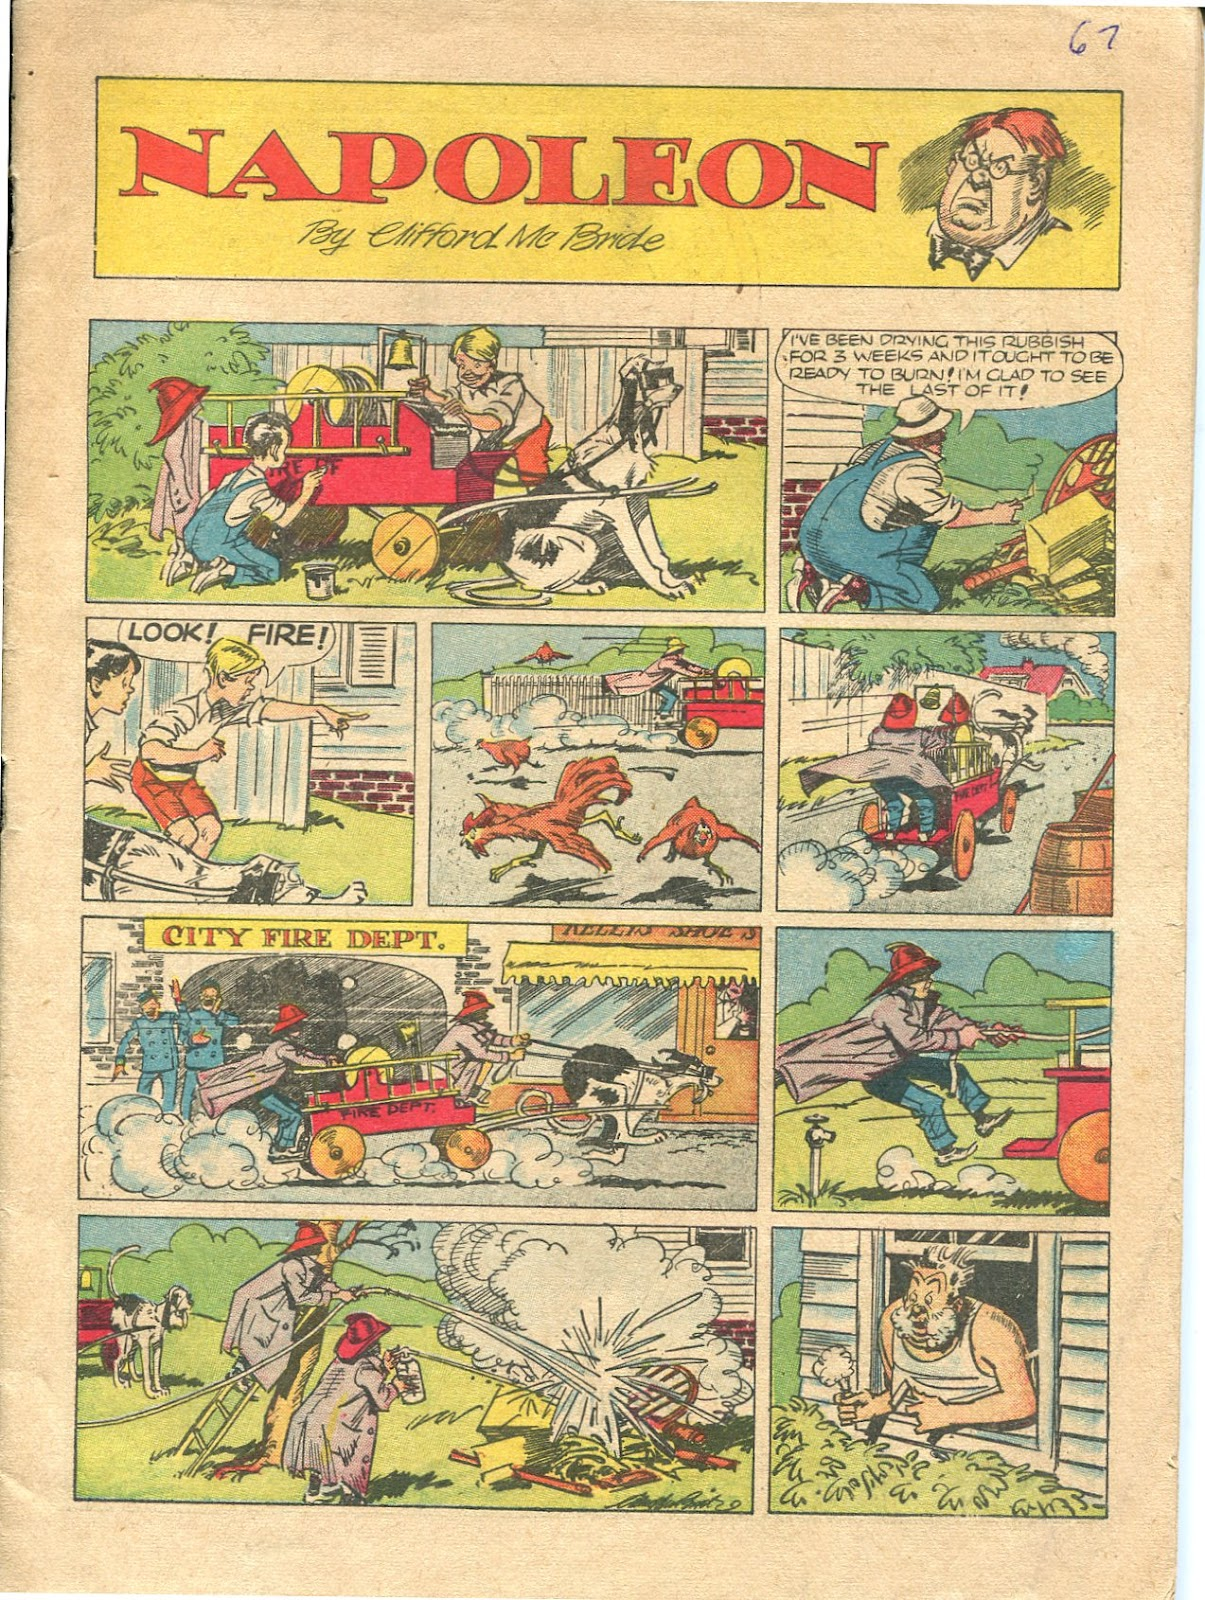 Read online Famous Funnies comic -  Issue #67 - 3